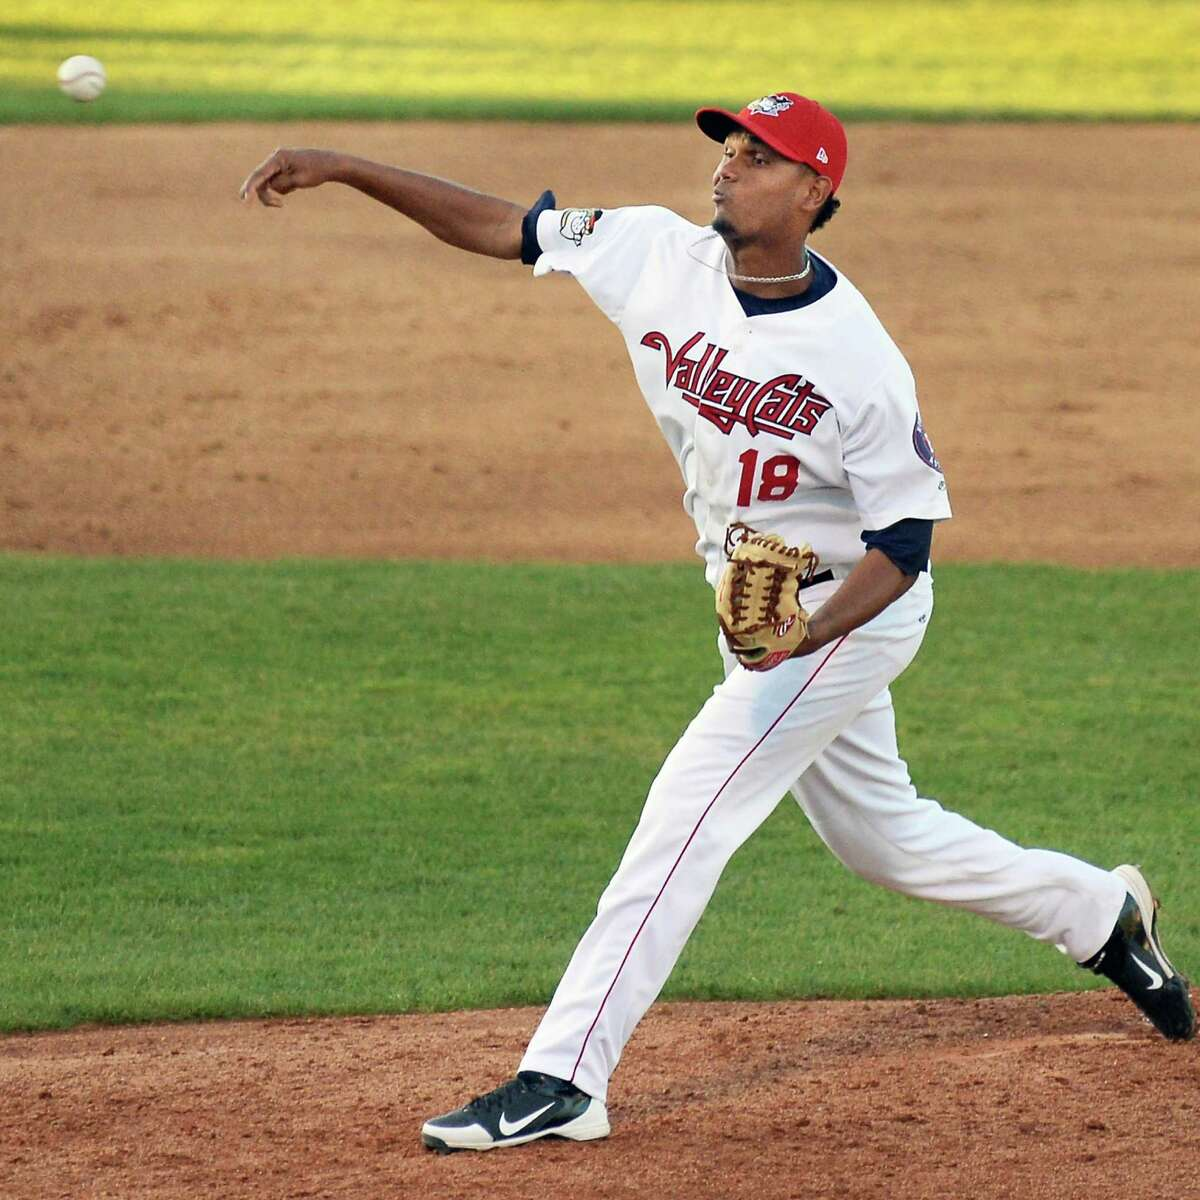 Tri-City ValleyCats' Yeyfry Del Rosario comes in to pitch in relief of starter Zac Person during Saturday's game against the Mahoning Valley Scrappers at Joe Bruno Stadium August 1, 2015 in Troy, NY. (John Carl D'Annibale / Times Union)